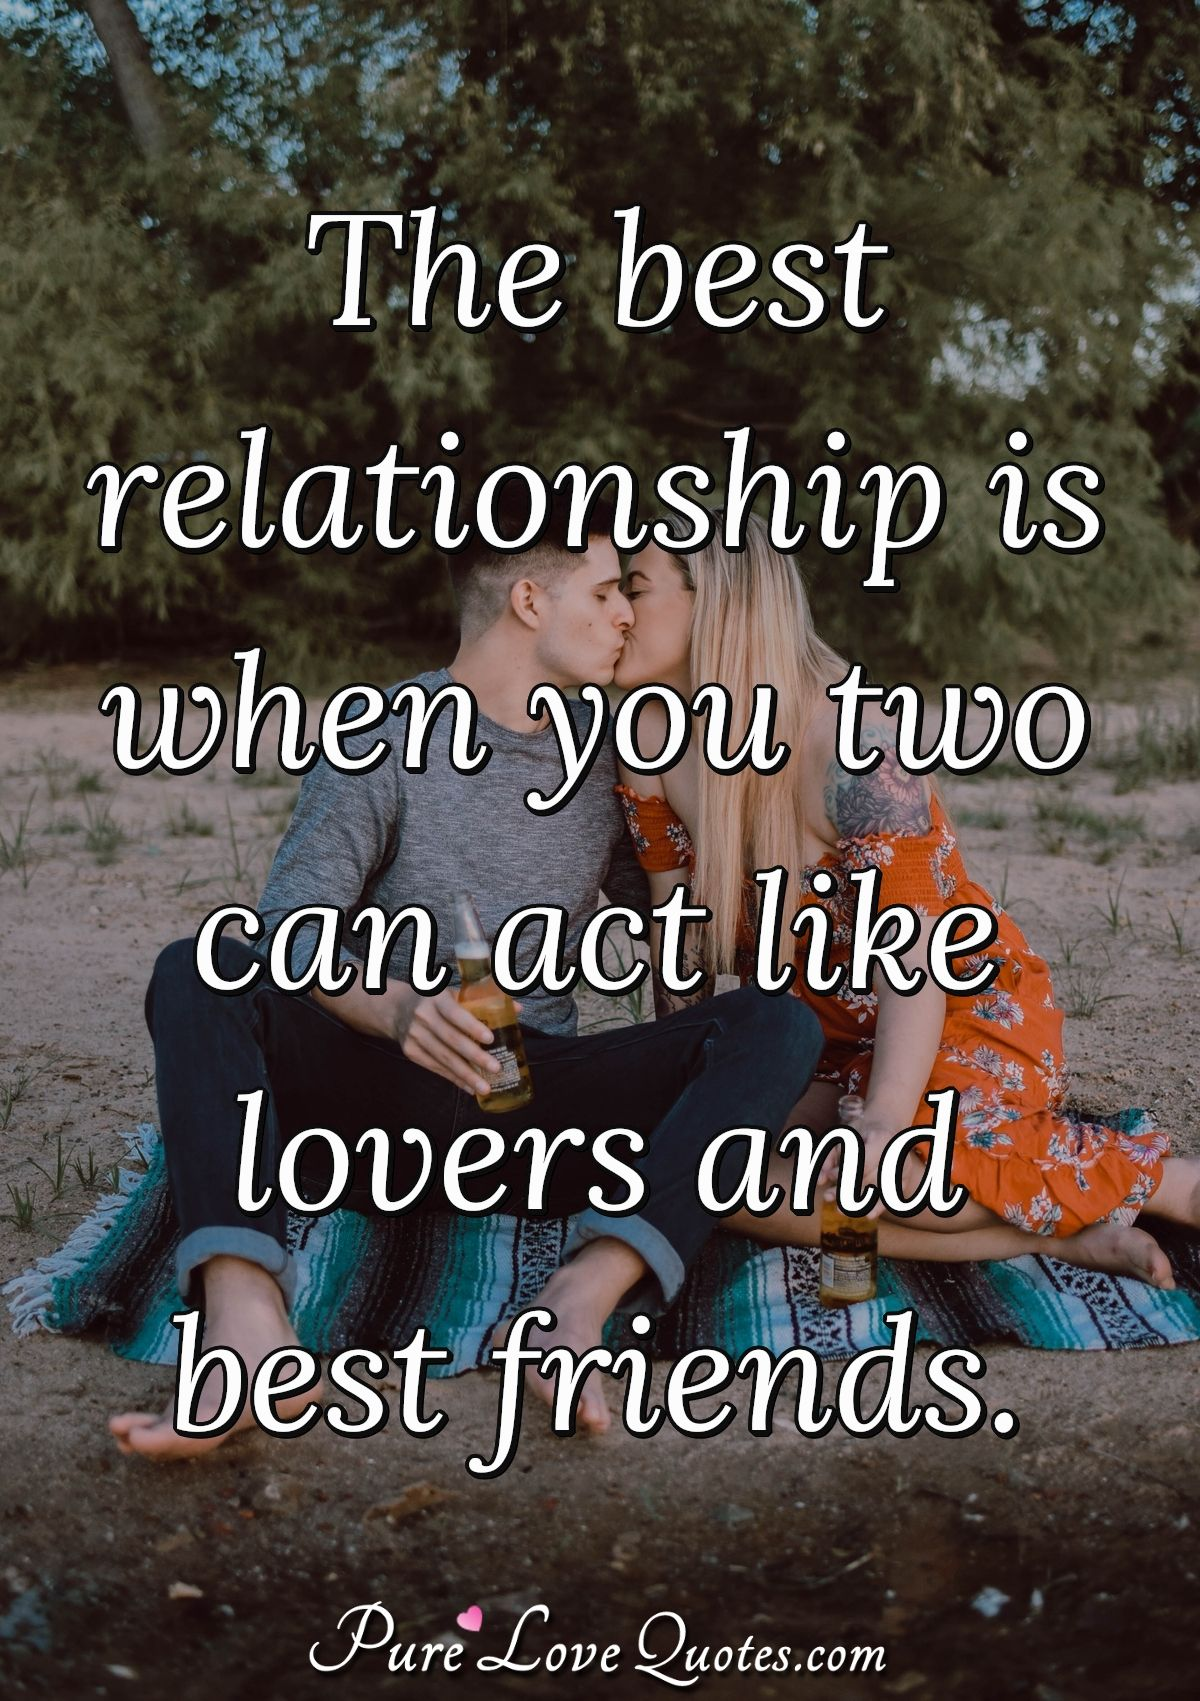 The best relationship is when you two can act like lovers and best friends. - Anonymous